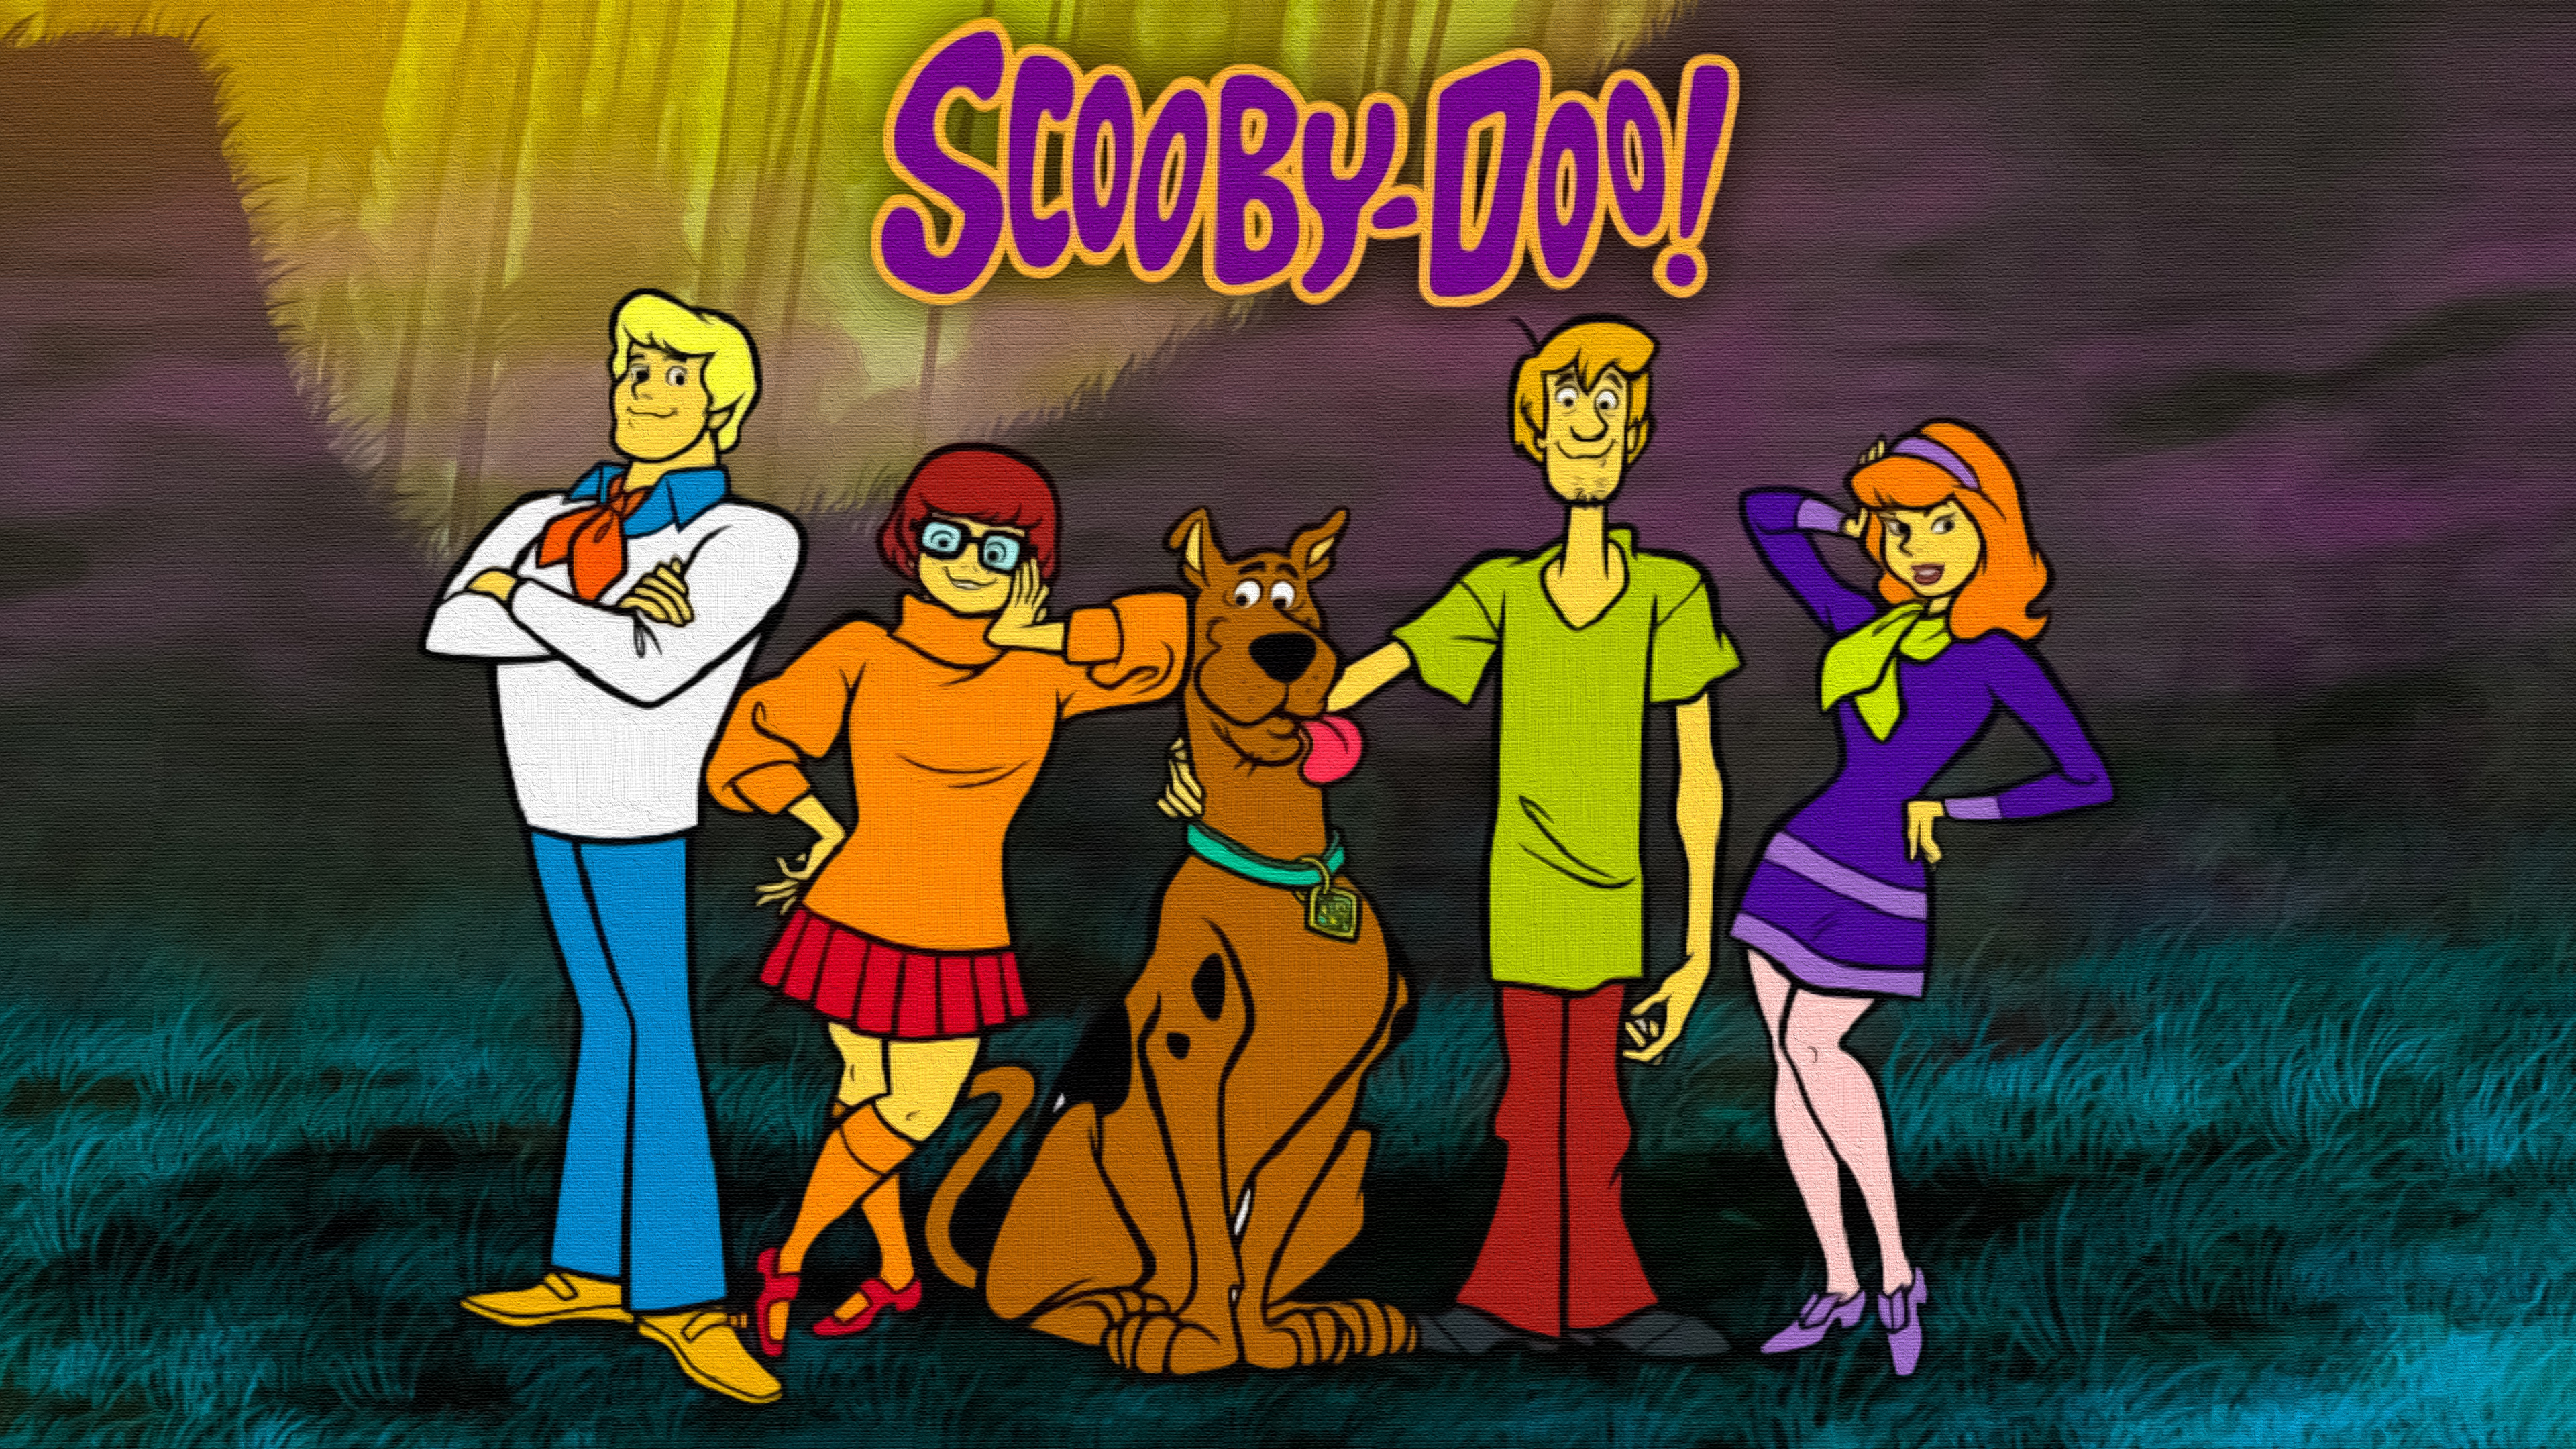 Scooby Doo Painting 4k Ultra Hd обои фон 3840x2160